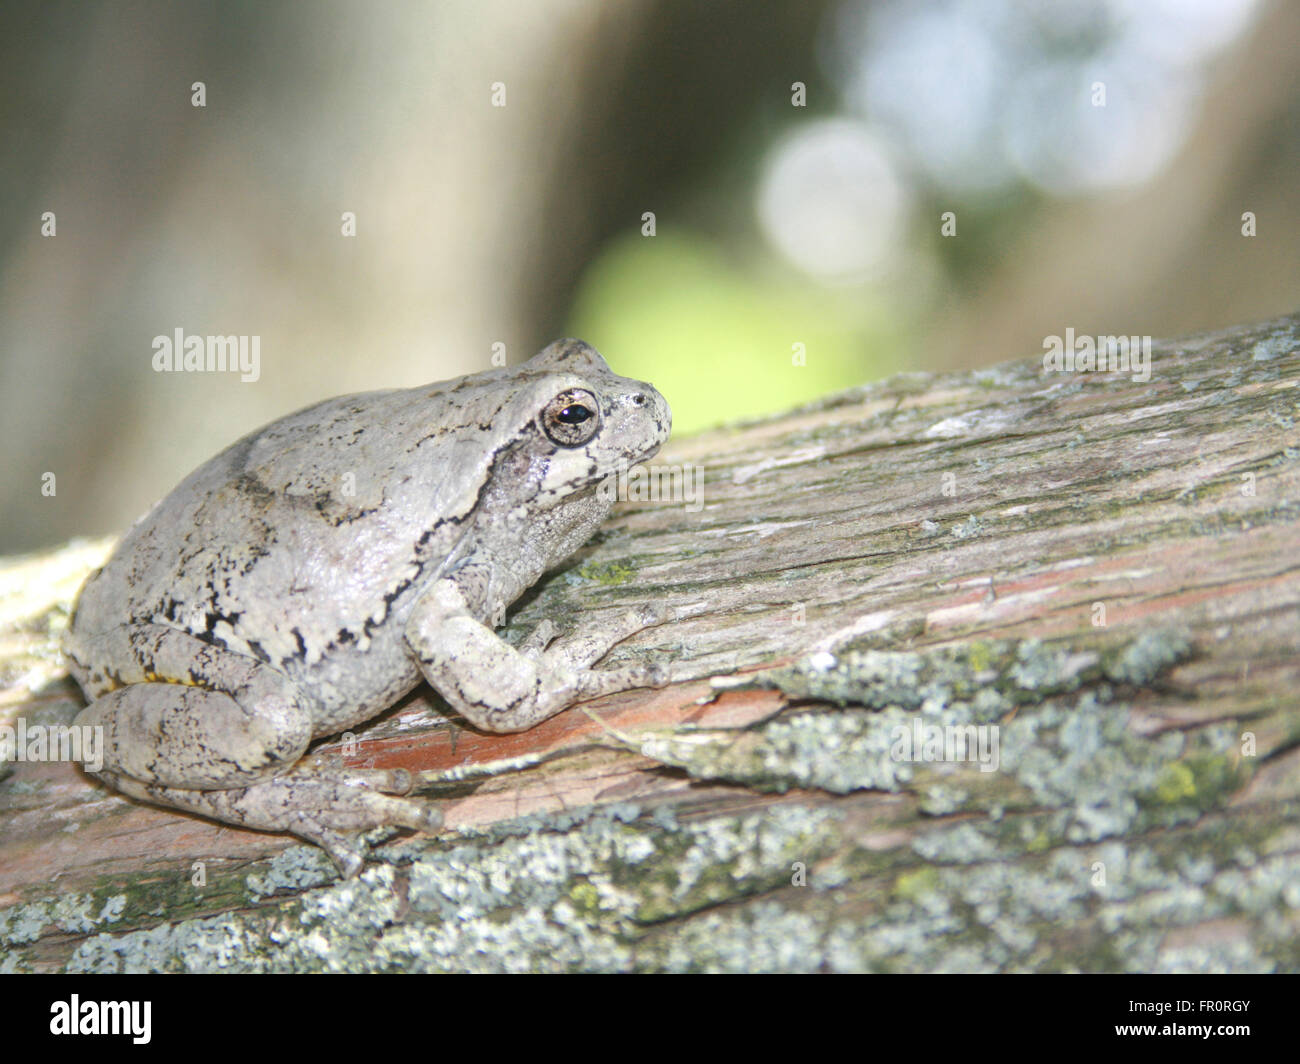 hyla versicolor or gray tree frog blends in on a cedar tree Stock Photo